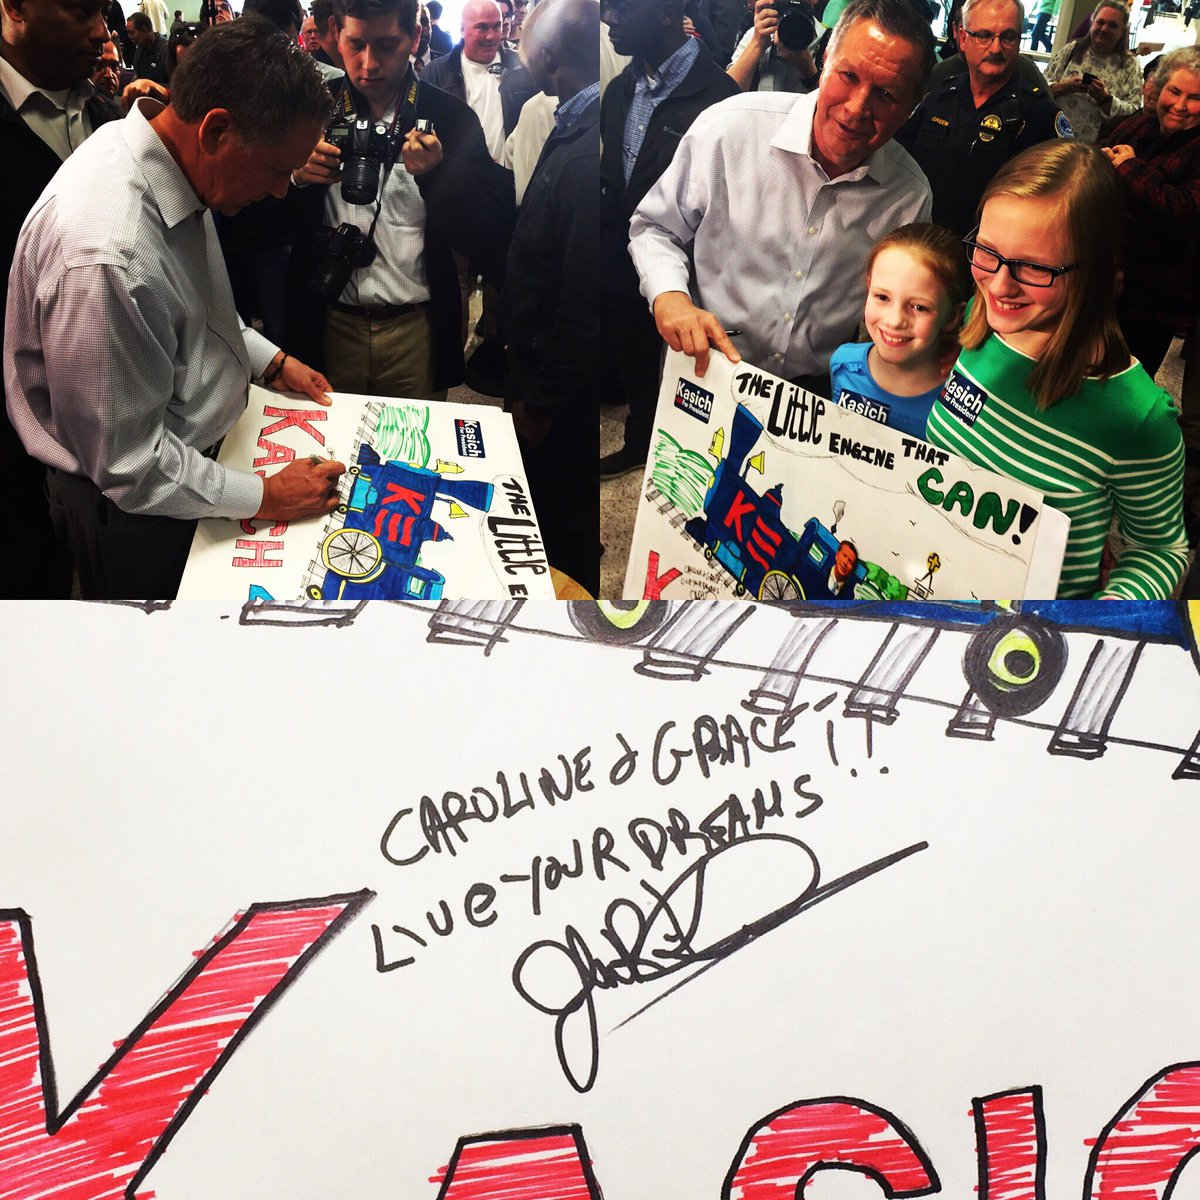 "Great @JohnKasich event! Little Engine poster signed, ""Live Your Dreams!"" #VAPrimary #SuperTuesday #Kasich4Us https://t.co/IVCGhbK9jD"